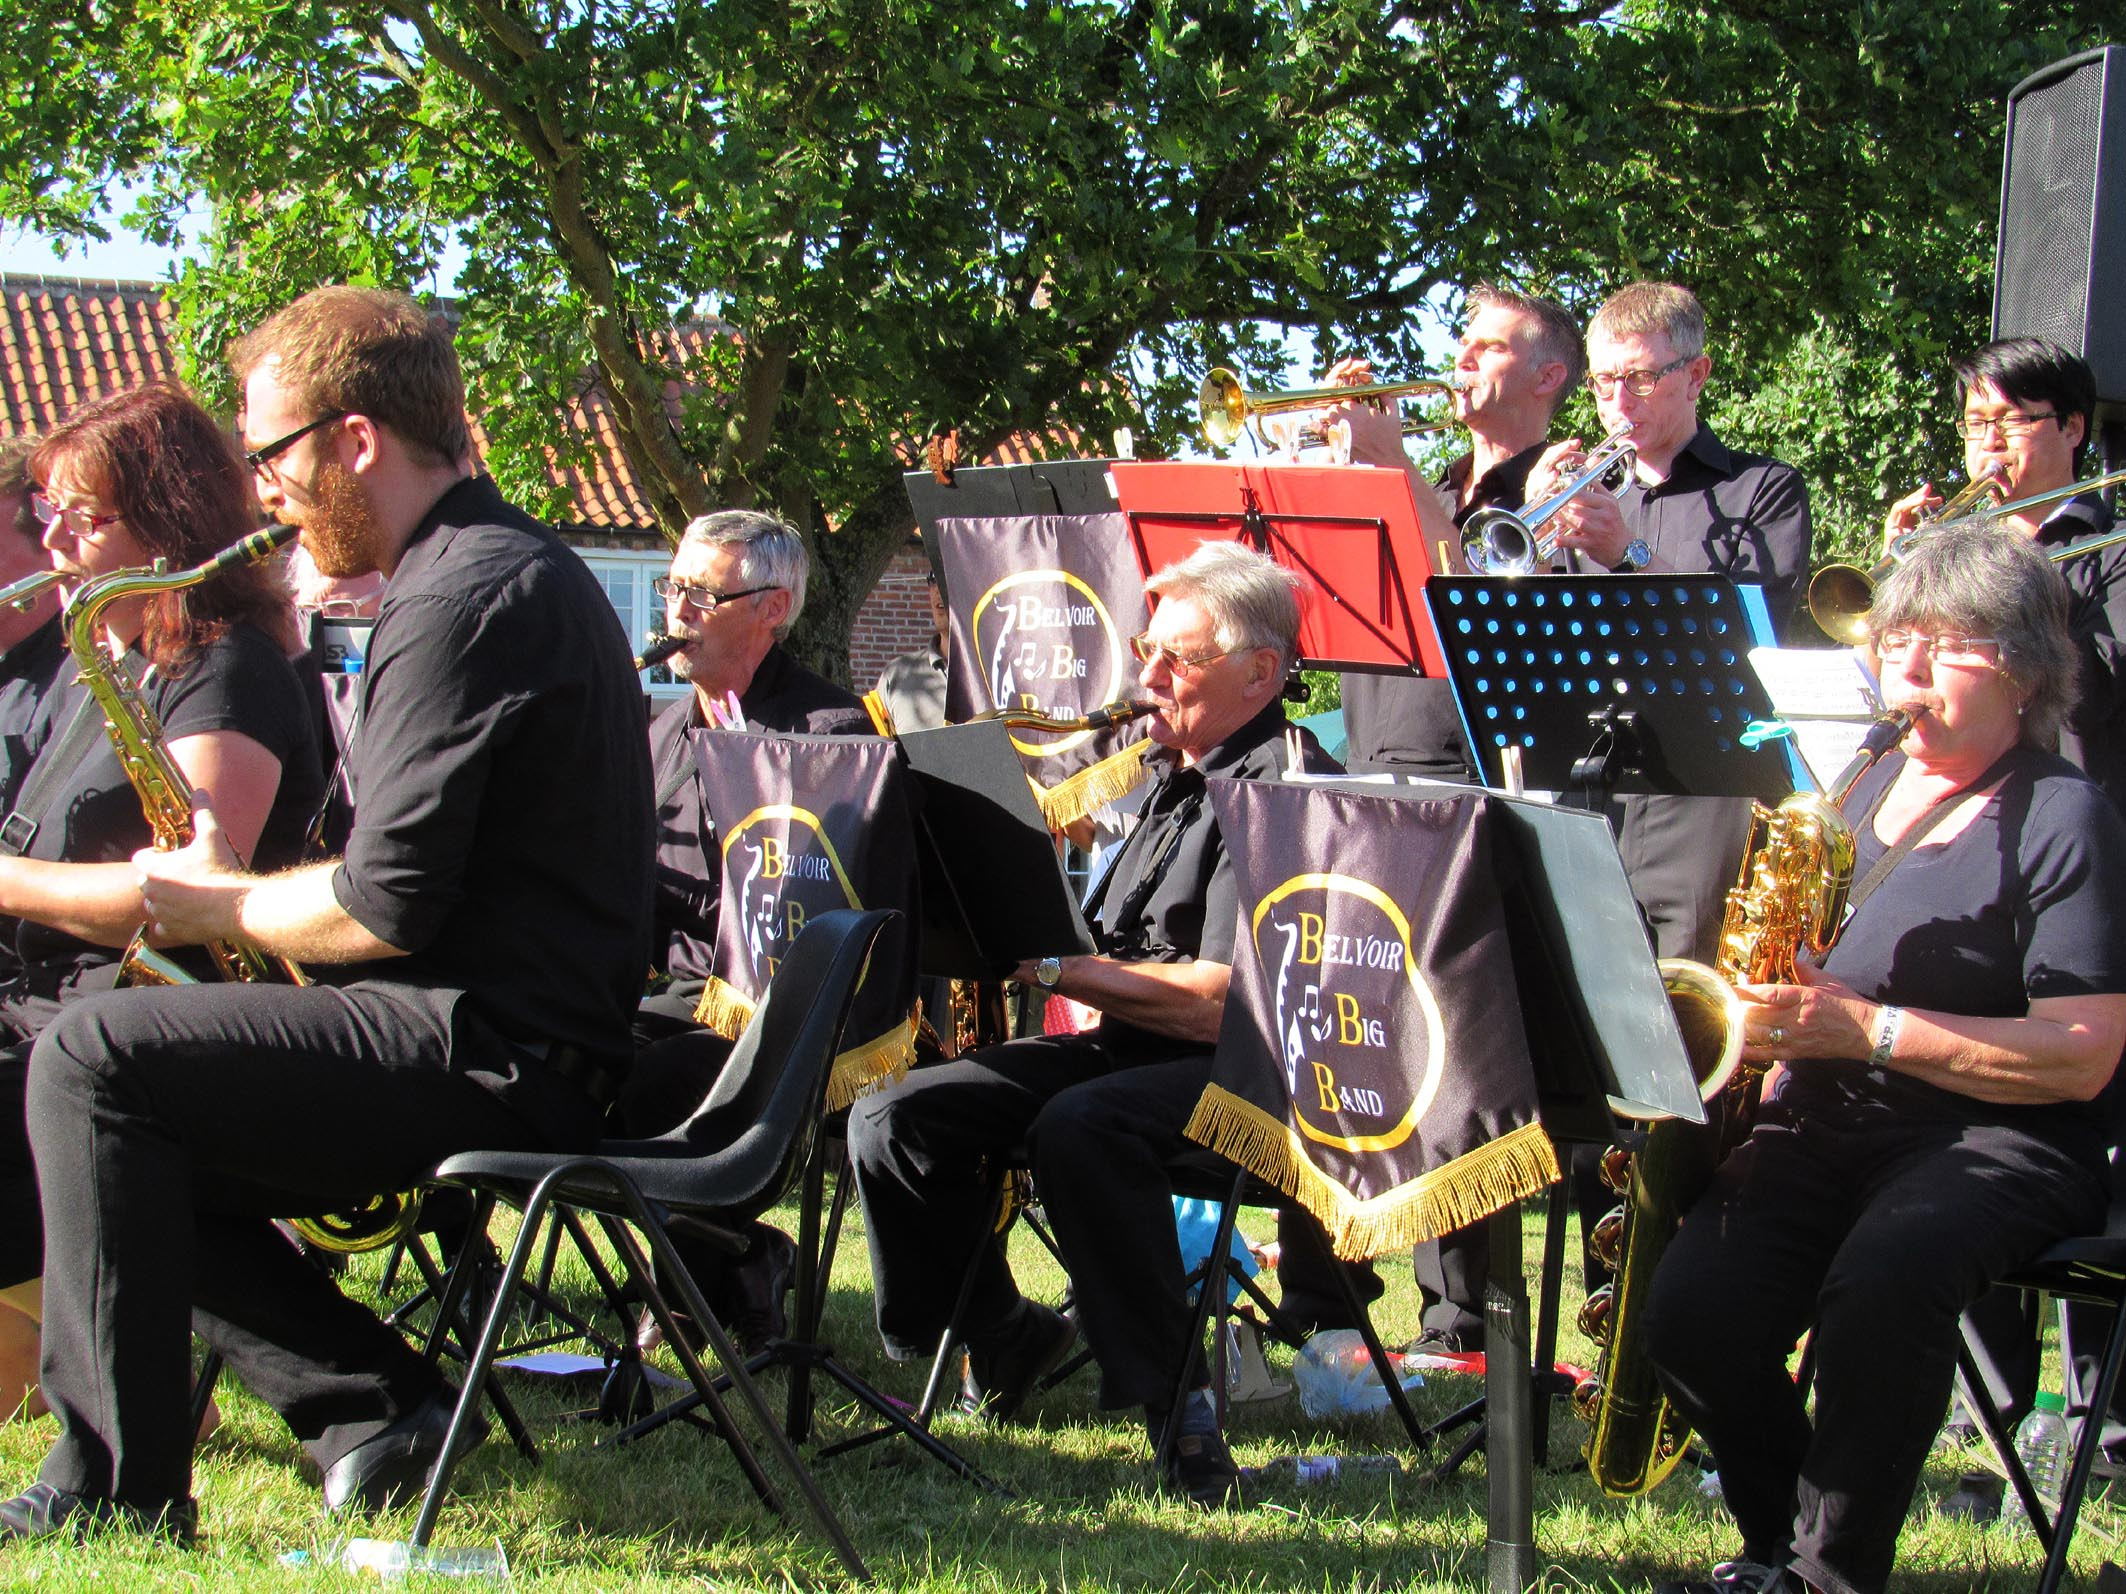 SOME OF THE BELVOIR BIG BAND AT OLD DALBY